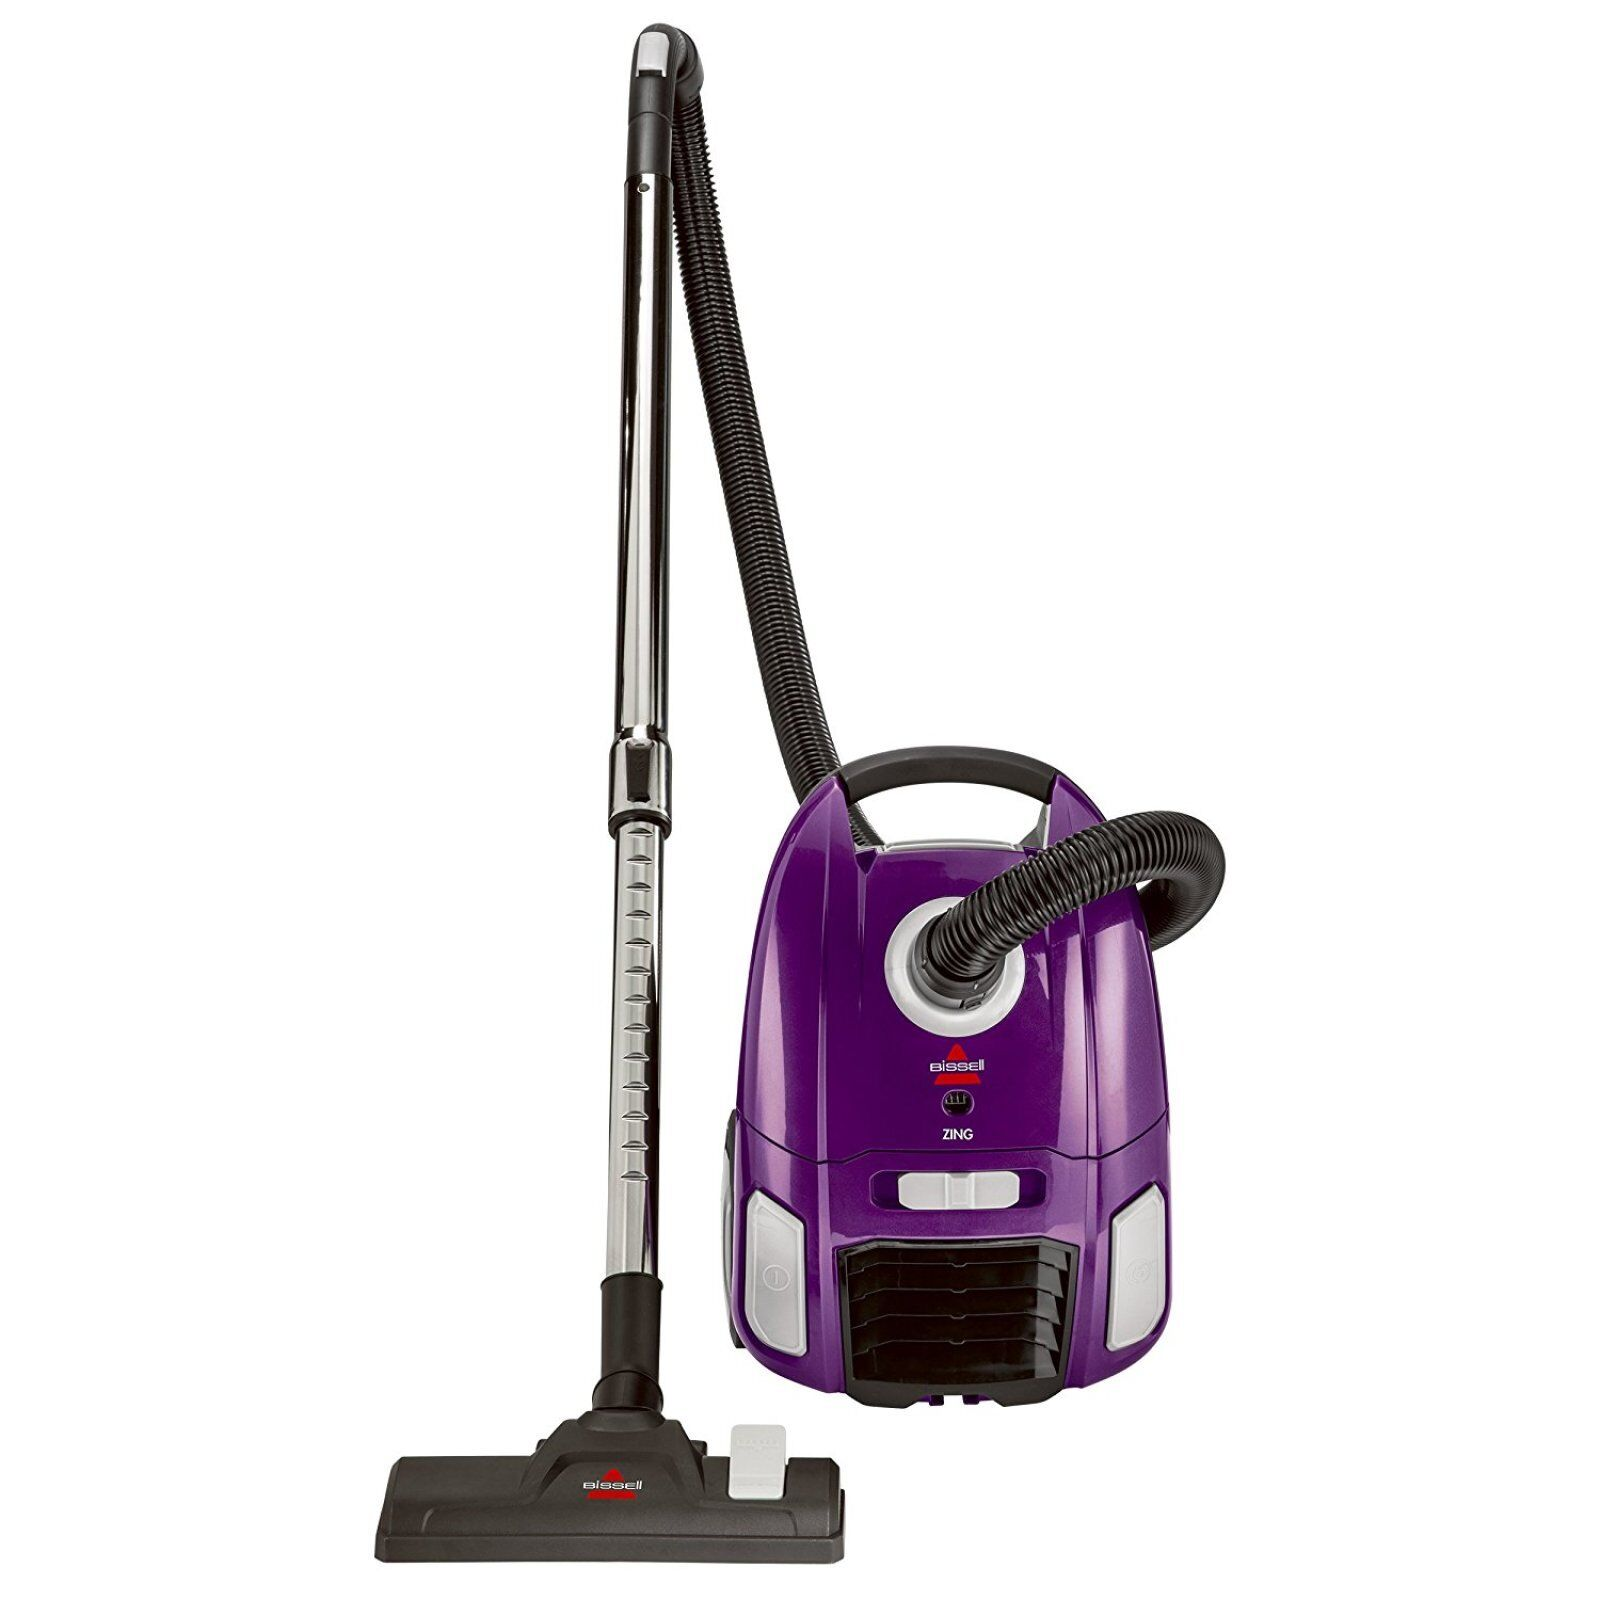 Carpet Cleaning Vacuum Details About Vacuum Cleaner Canister Bagged Rewind Corded Carpet Hard Floor Swivel Steering